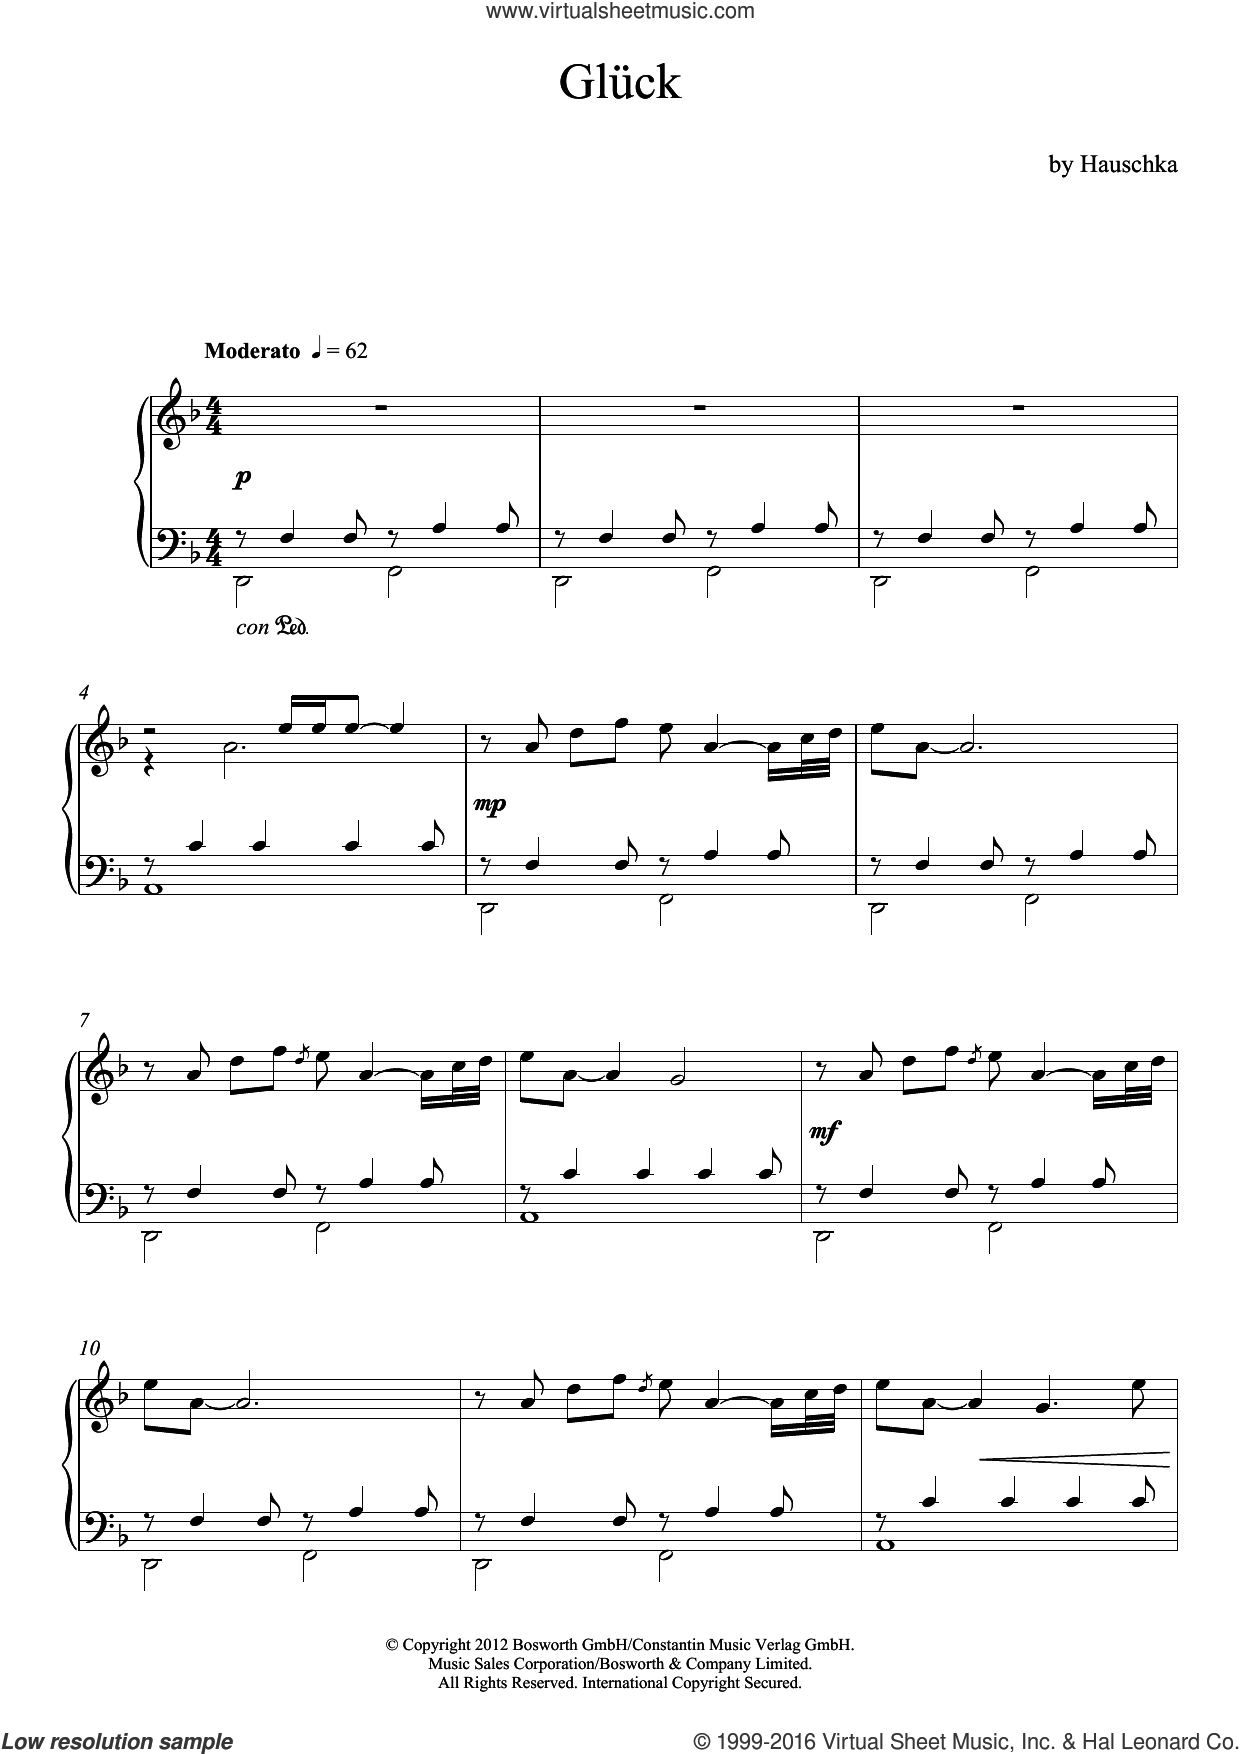 Gluck (Theme) sheet music for piano solo by Volker Bertelmann and Hauschka. Score Image Preview.